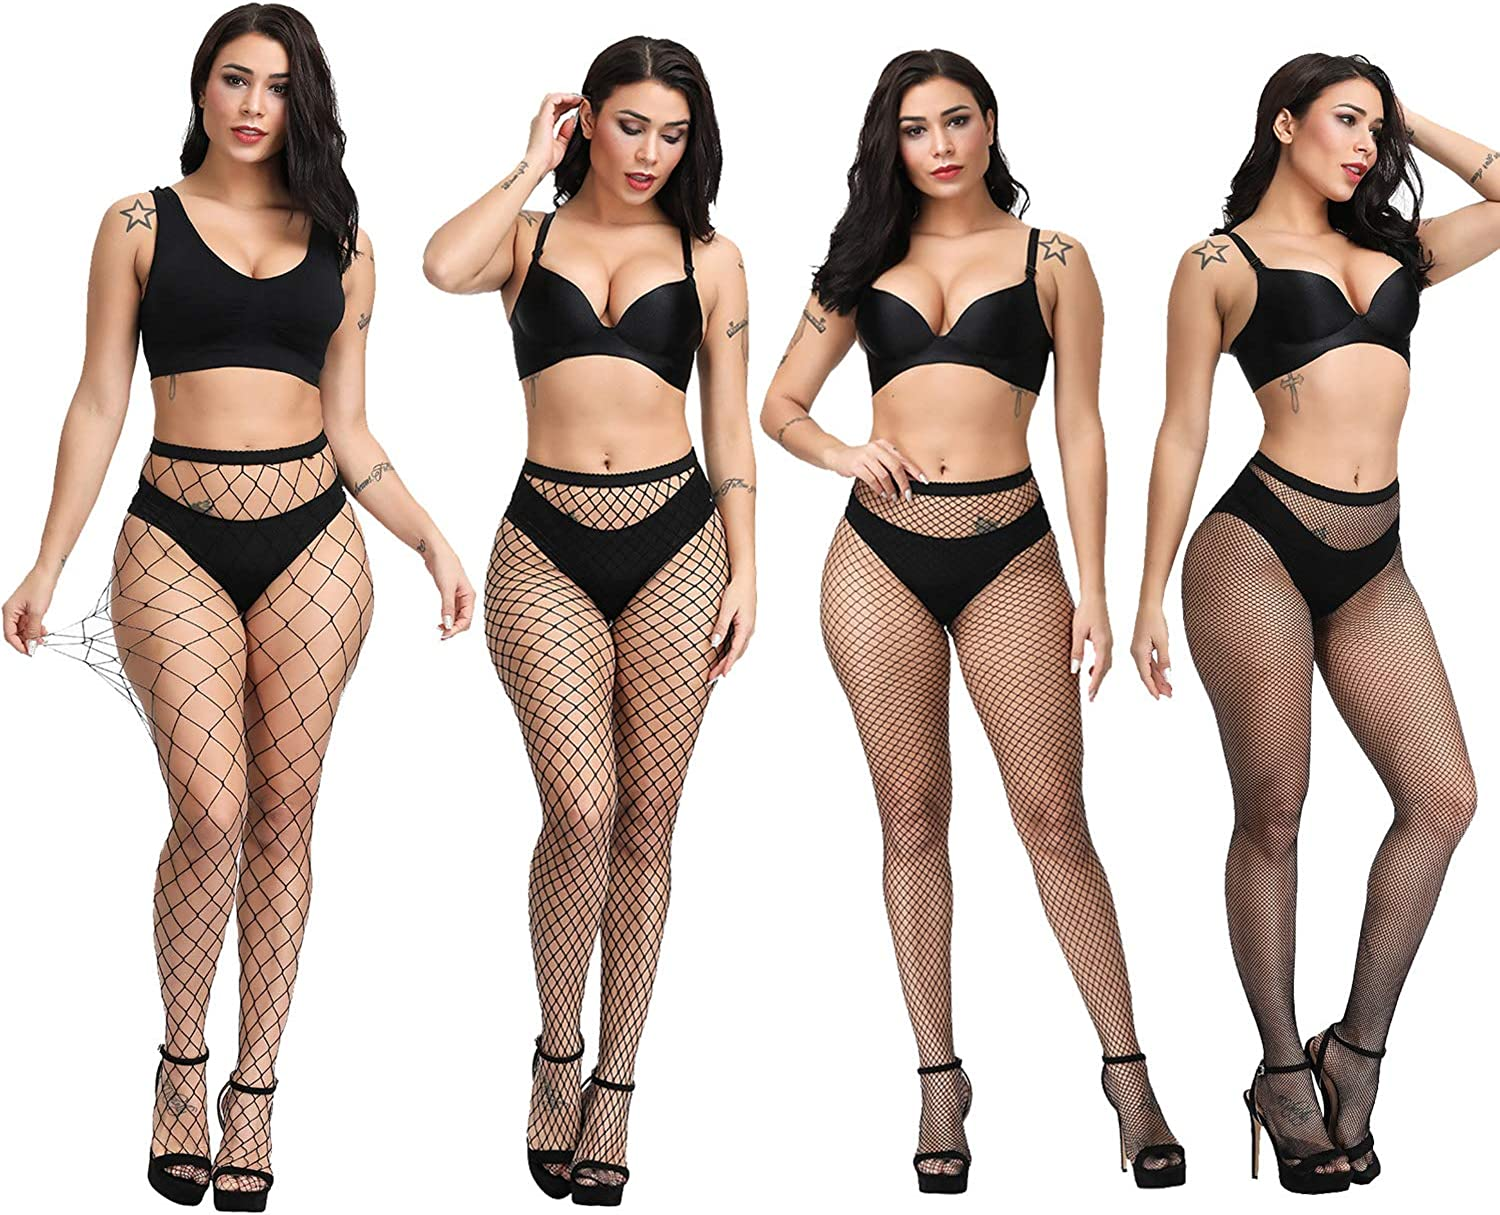 Fullsexy Fishnet Stockings for Women Thigh High Stockings High Waist Suspander Pantyhose (A2-4 Pack): Clothing